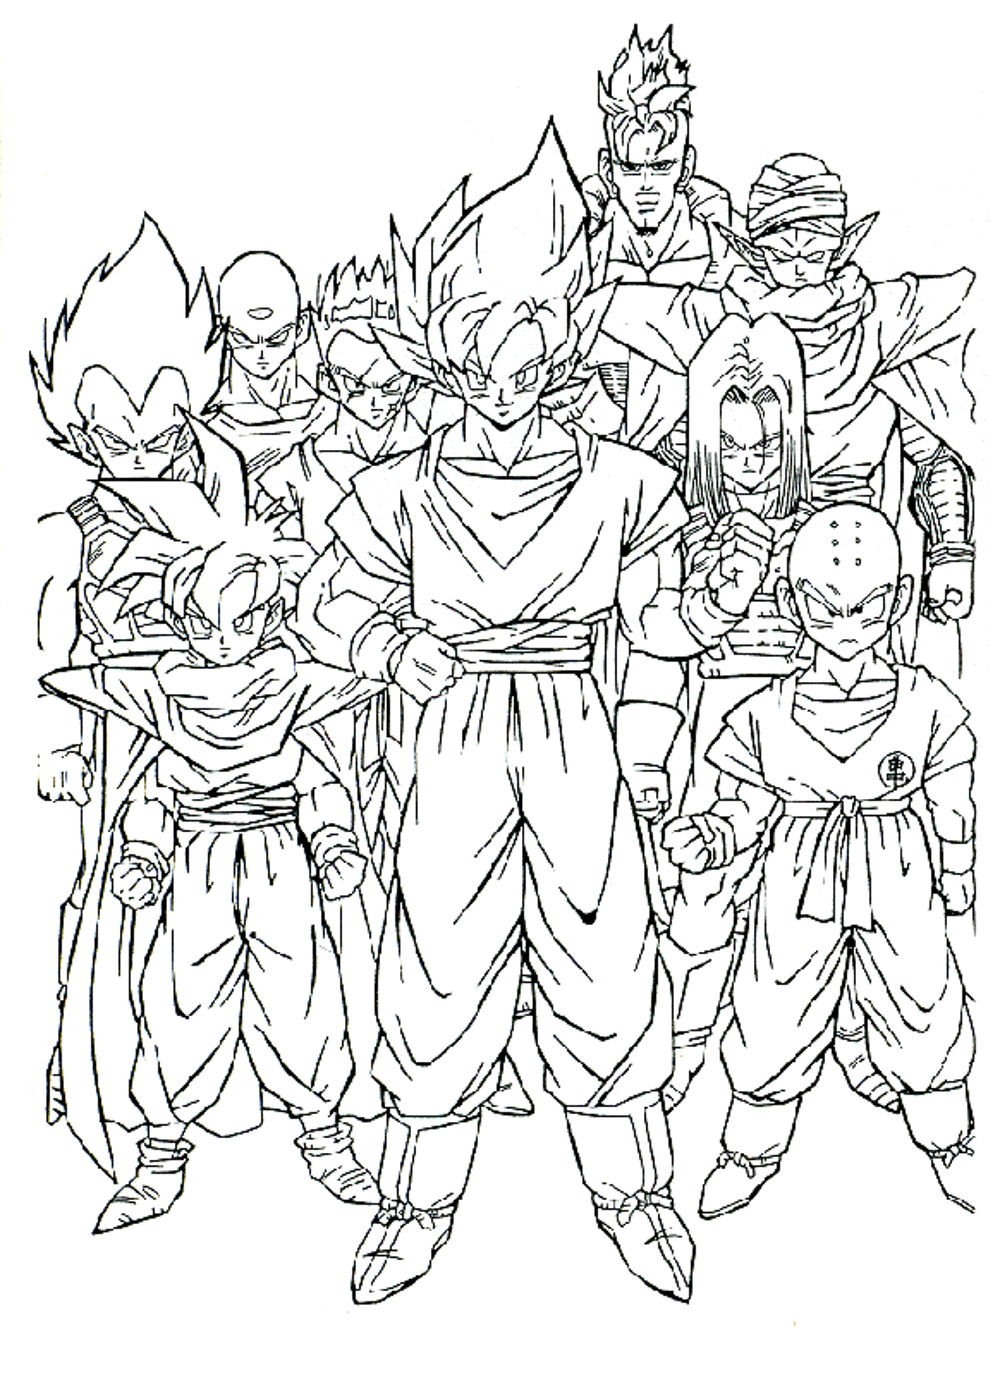 Dragon Ball Z Coloring Pages Printable  dragon ball z coloring pages printable